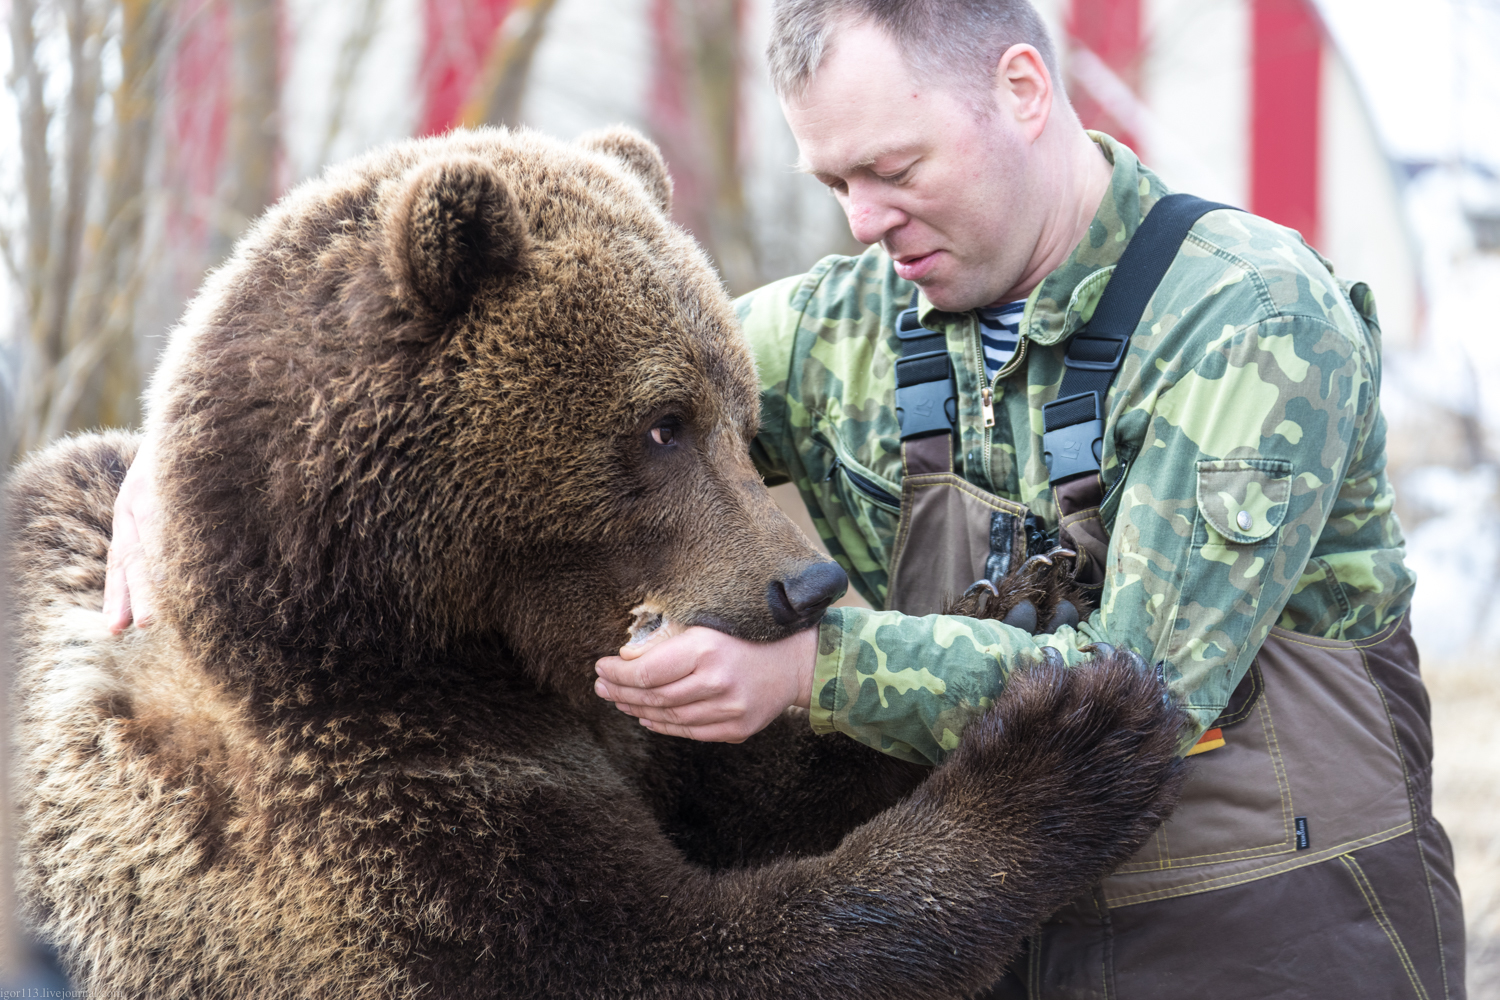 A Story of a Bear That Lives at the Airfield and Fond of Sucking Human Hands